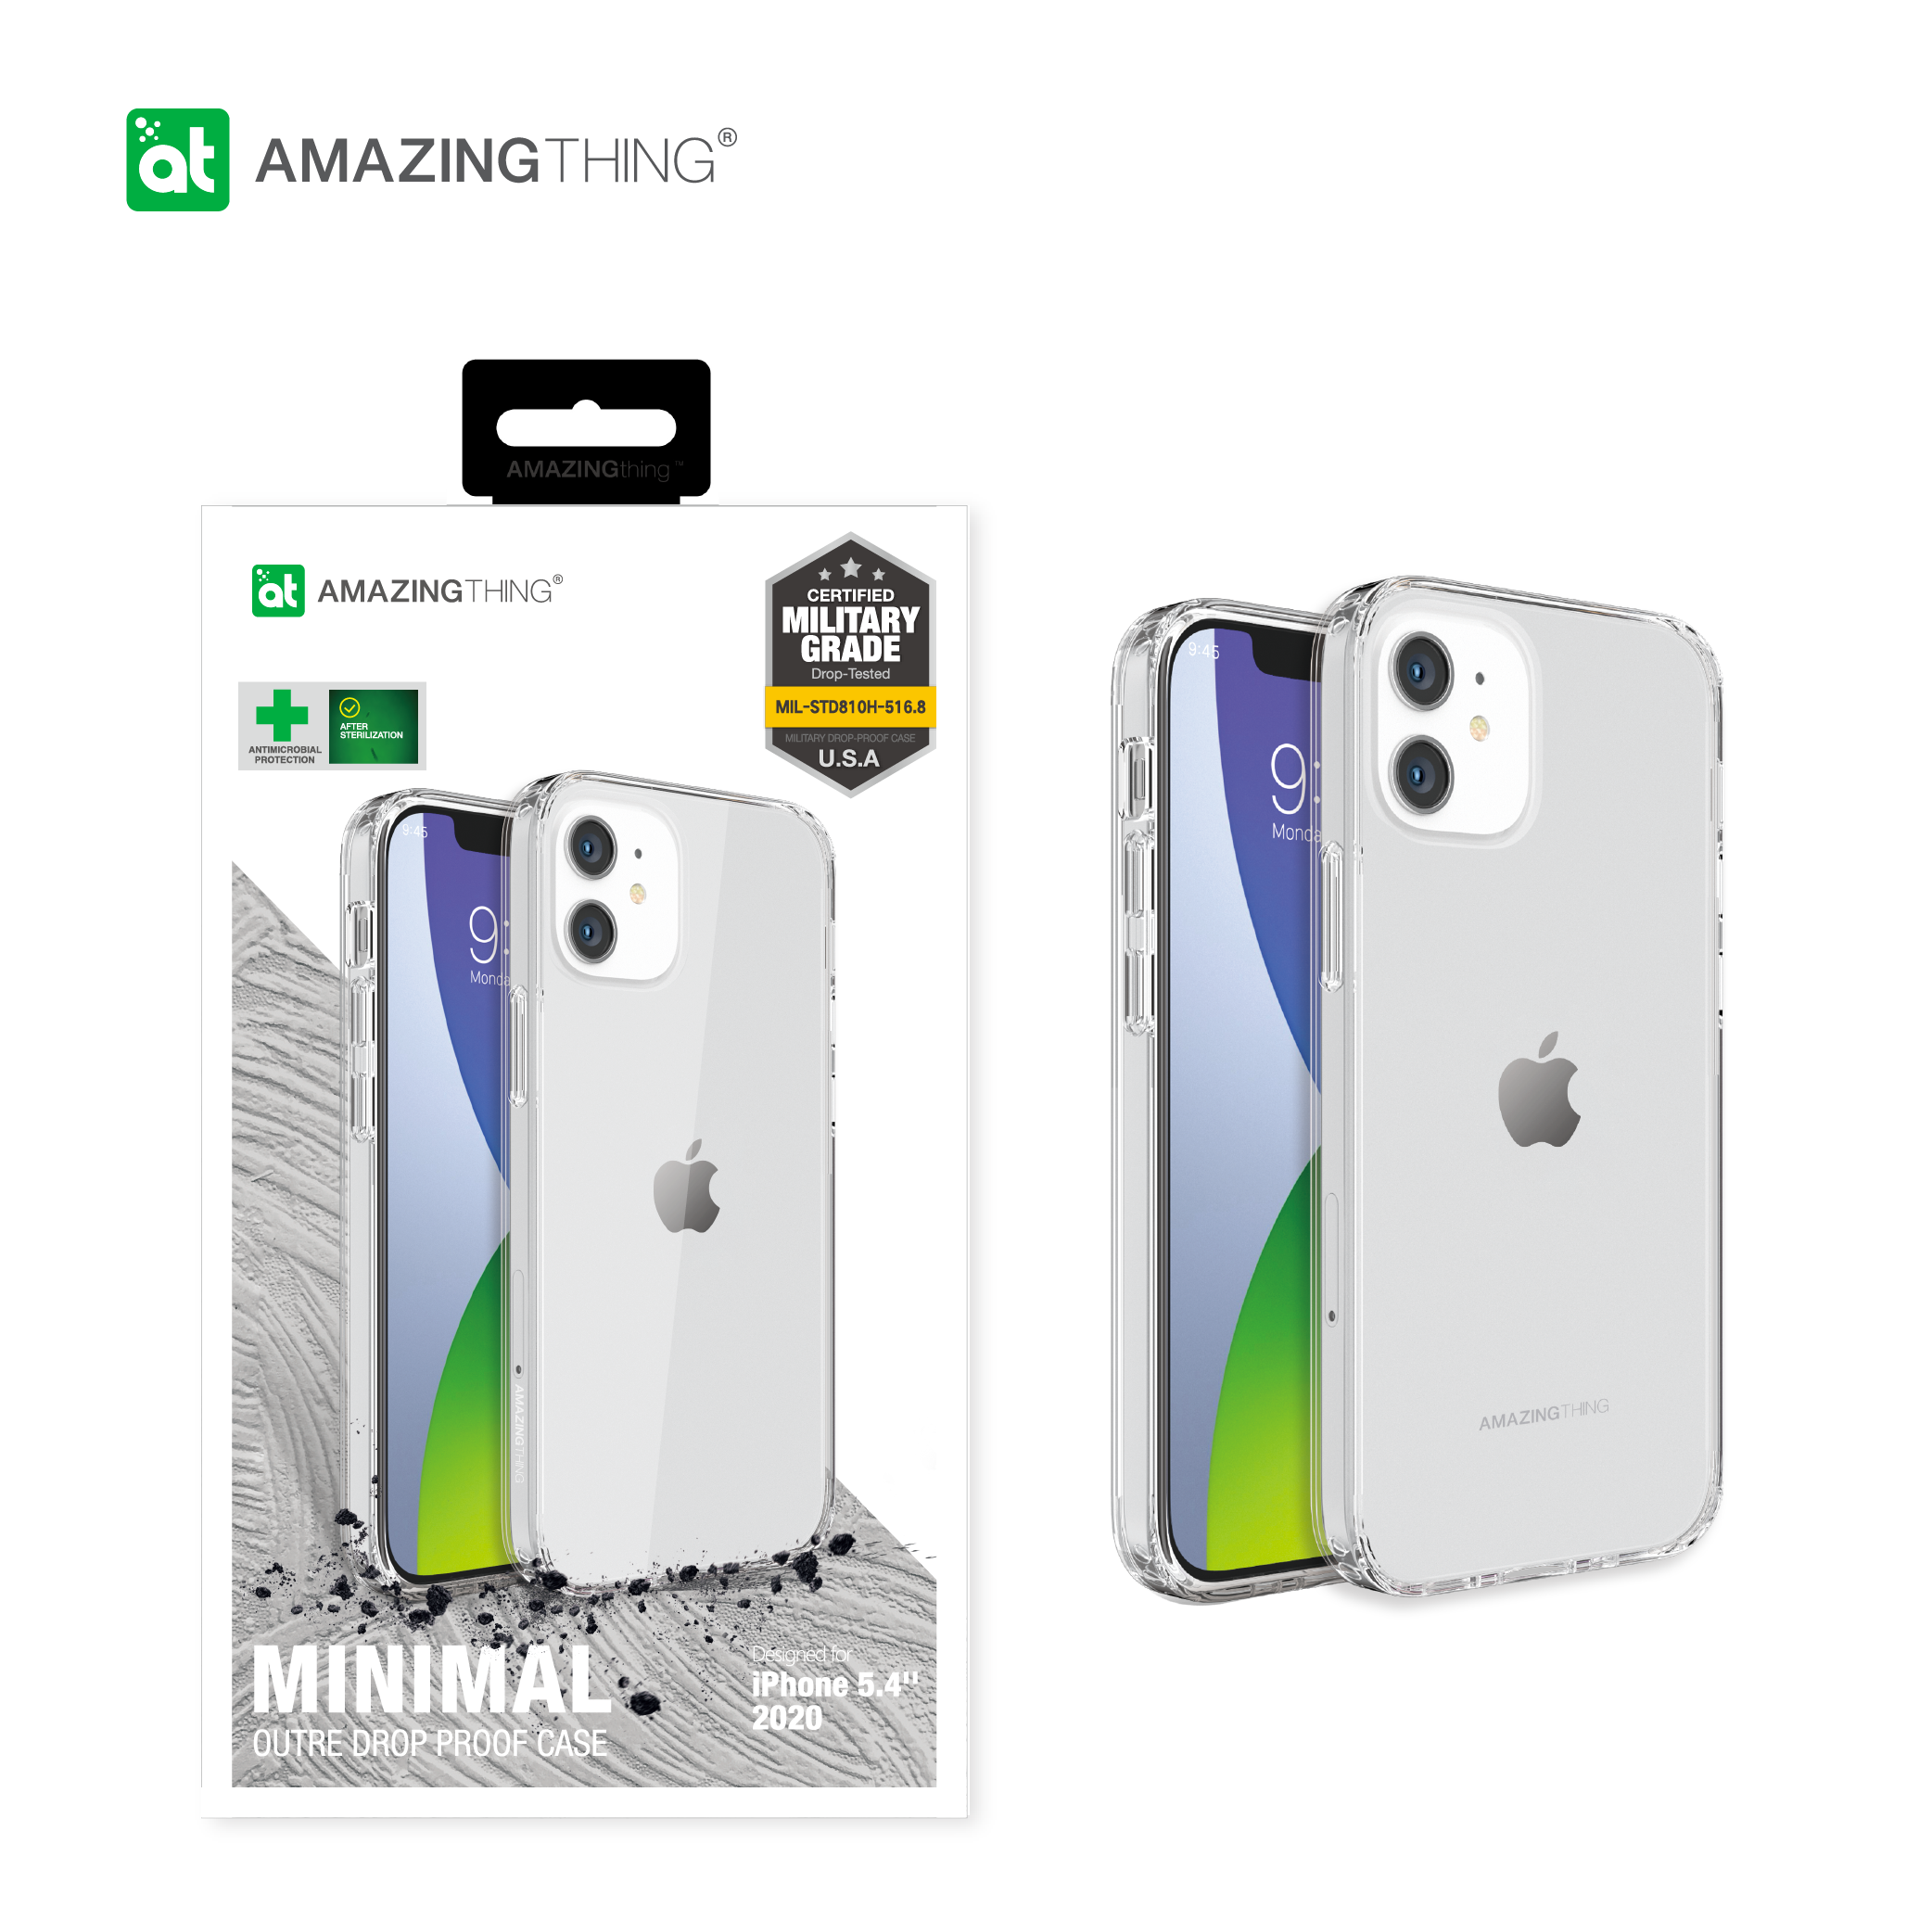 AMAZINGthing CASE Apple iPhone 12/ 12mini/ 12 Pro (2020) Anti-microbial Minimal Outre Drop proof